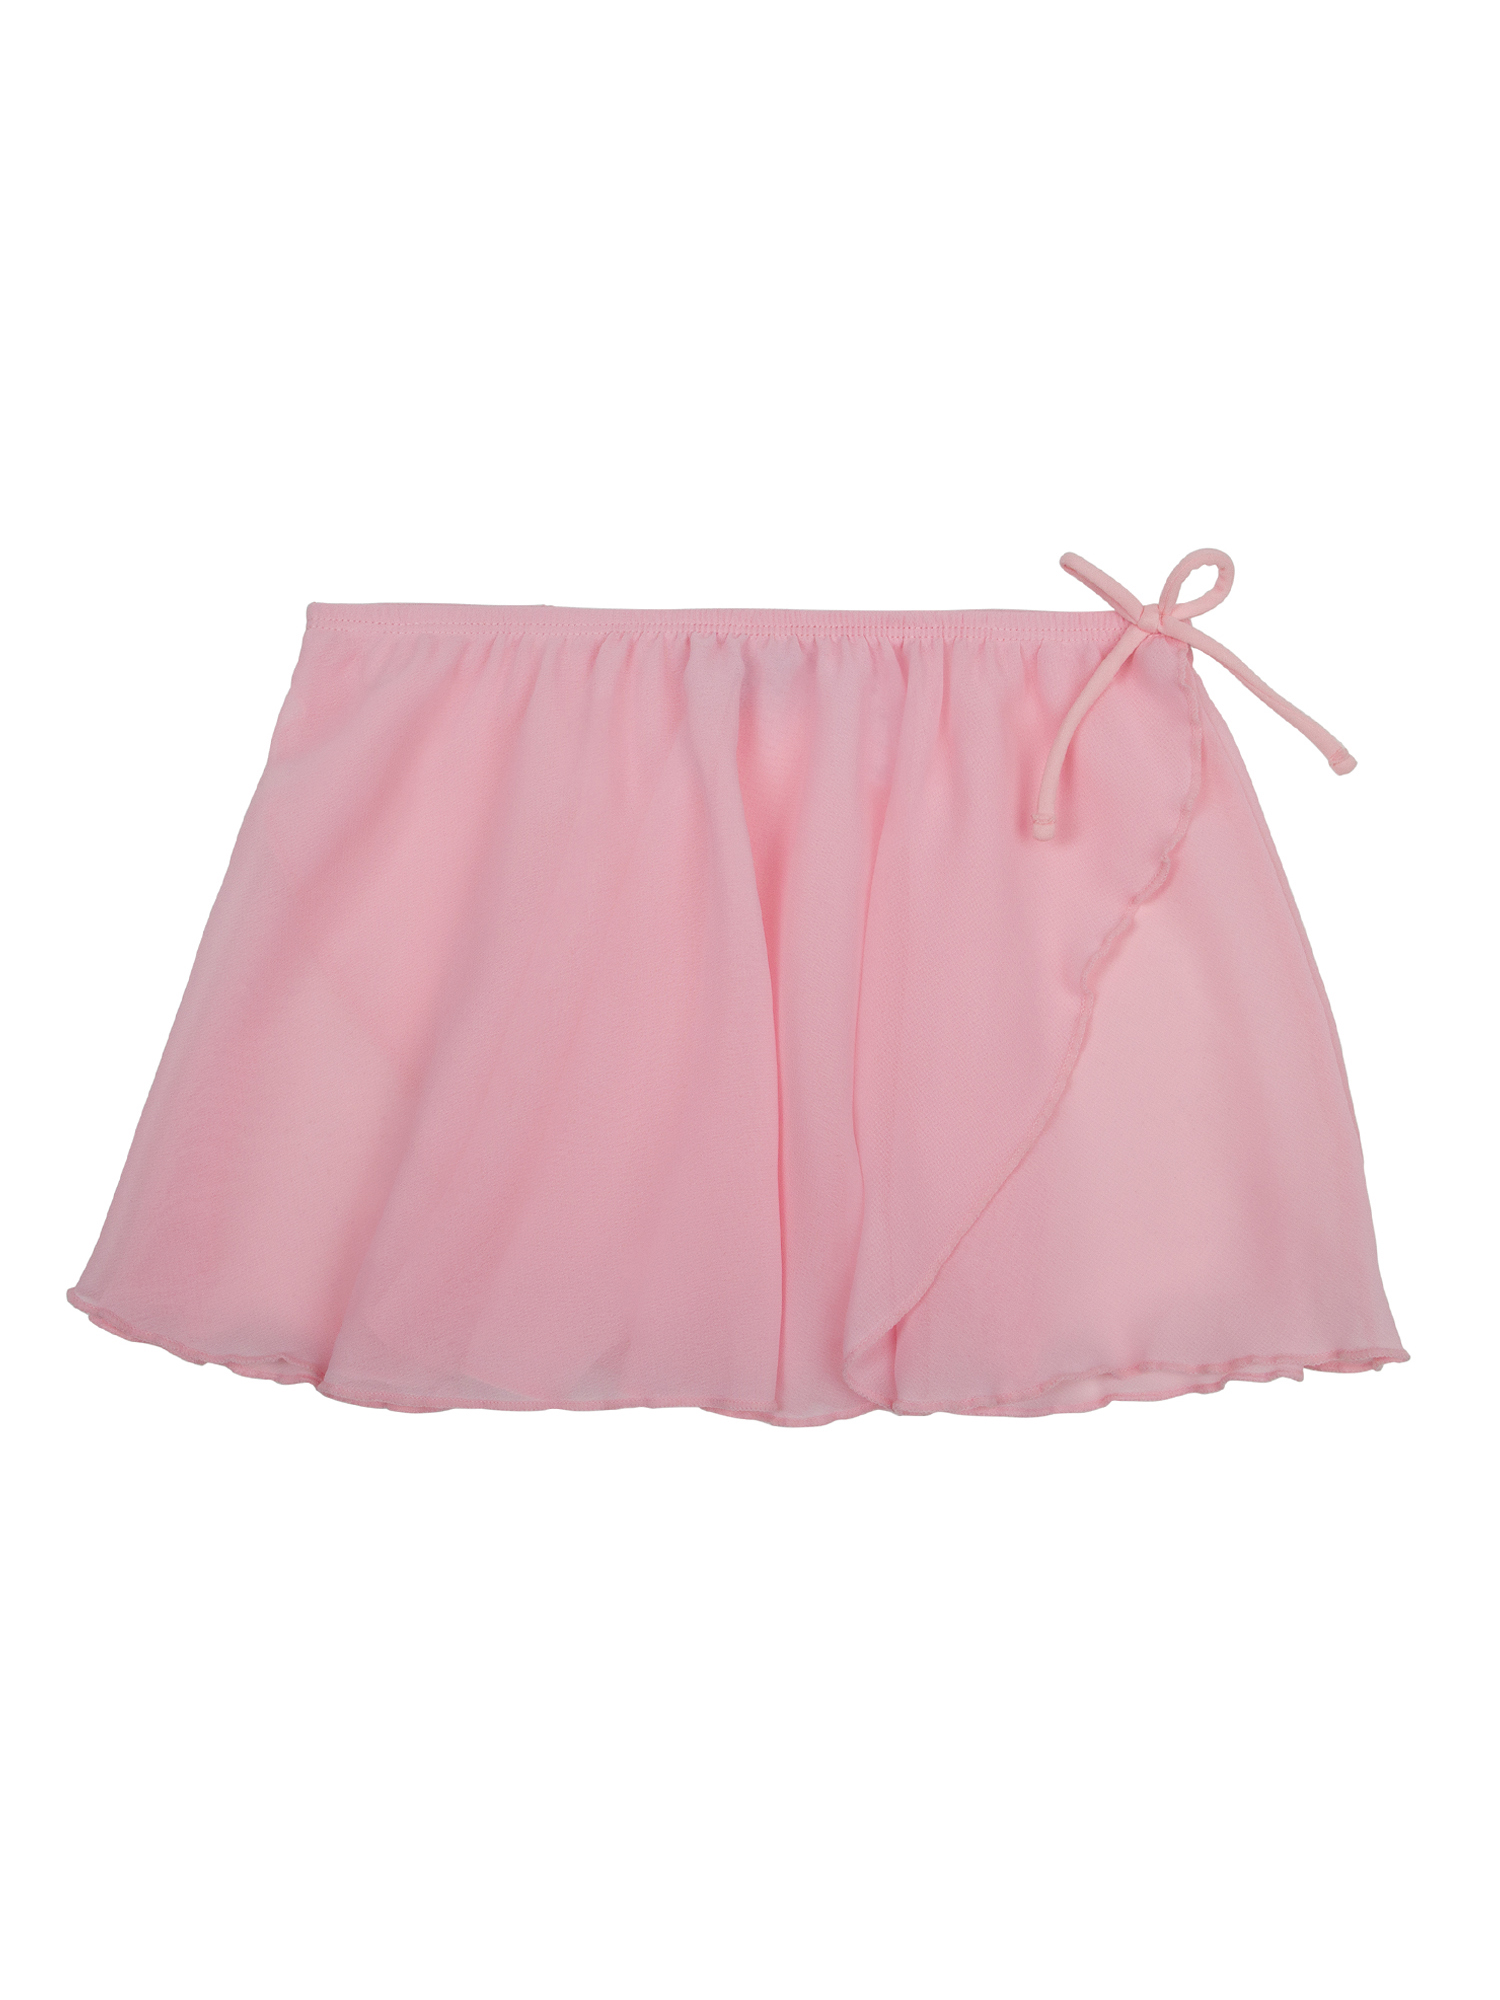 Jacques Moret Kids Girls Chiffon Skirt